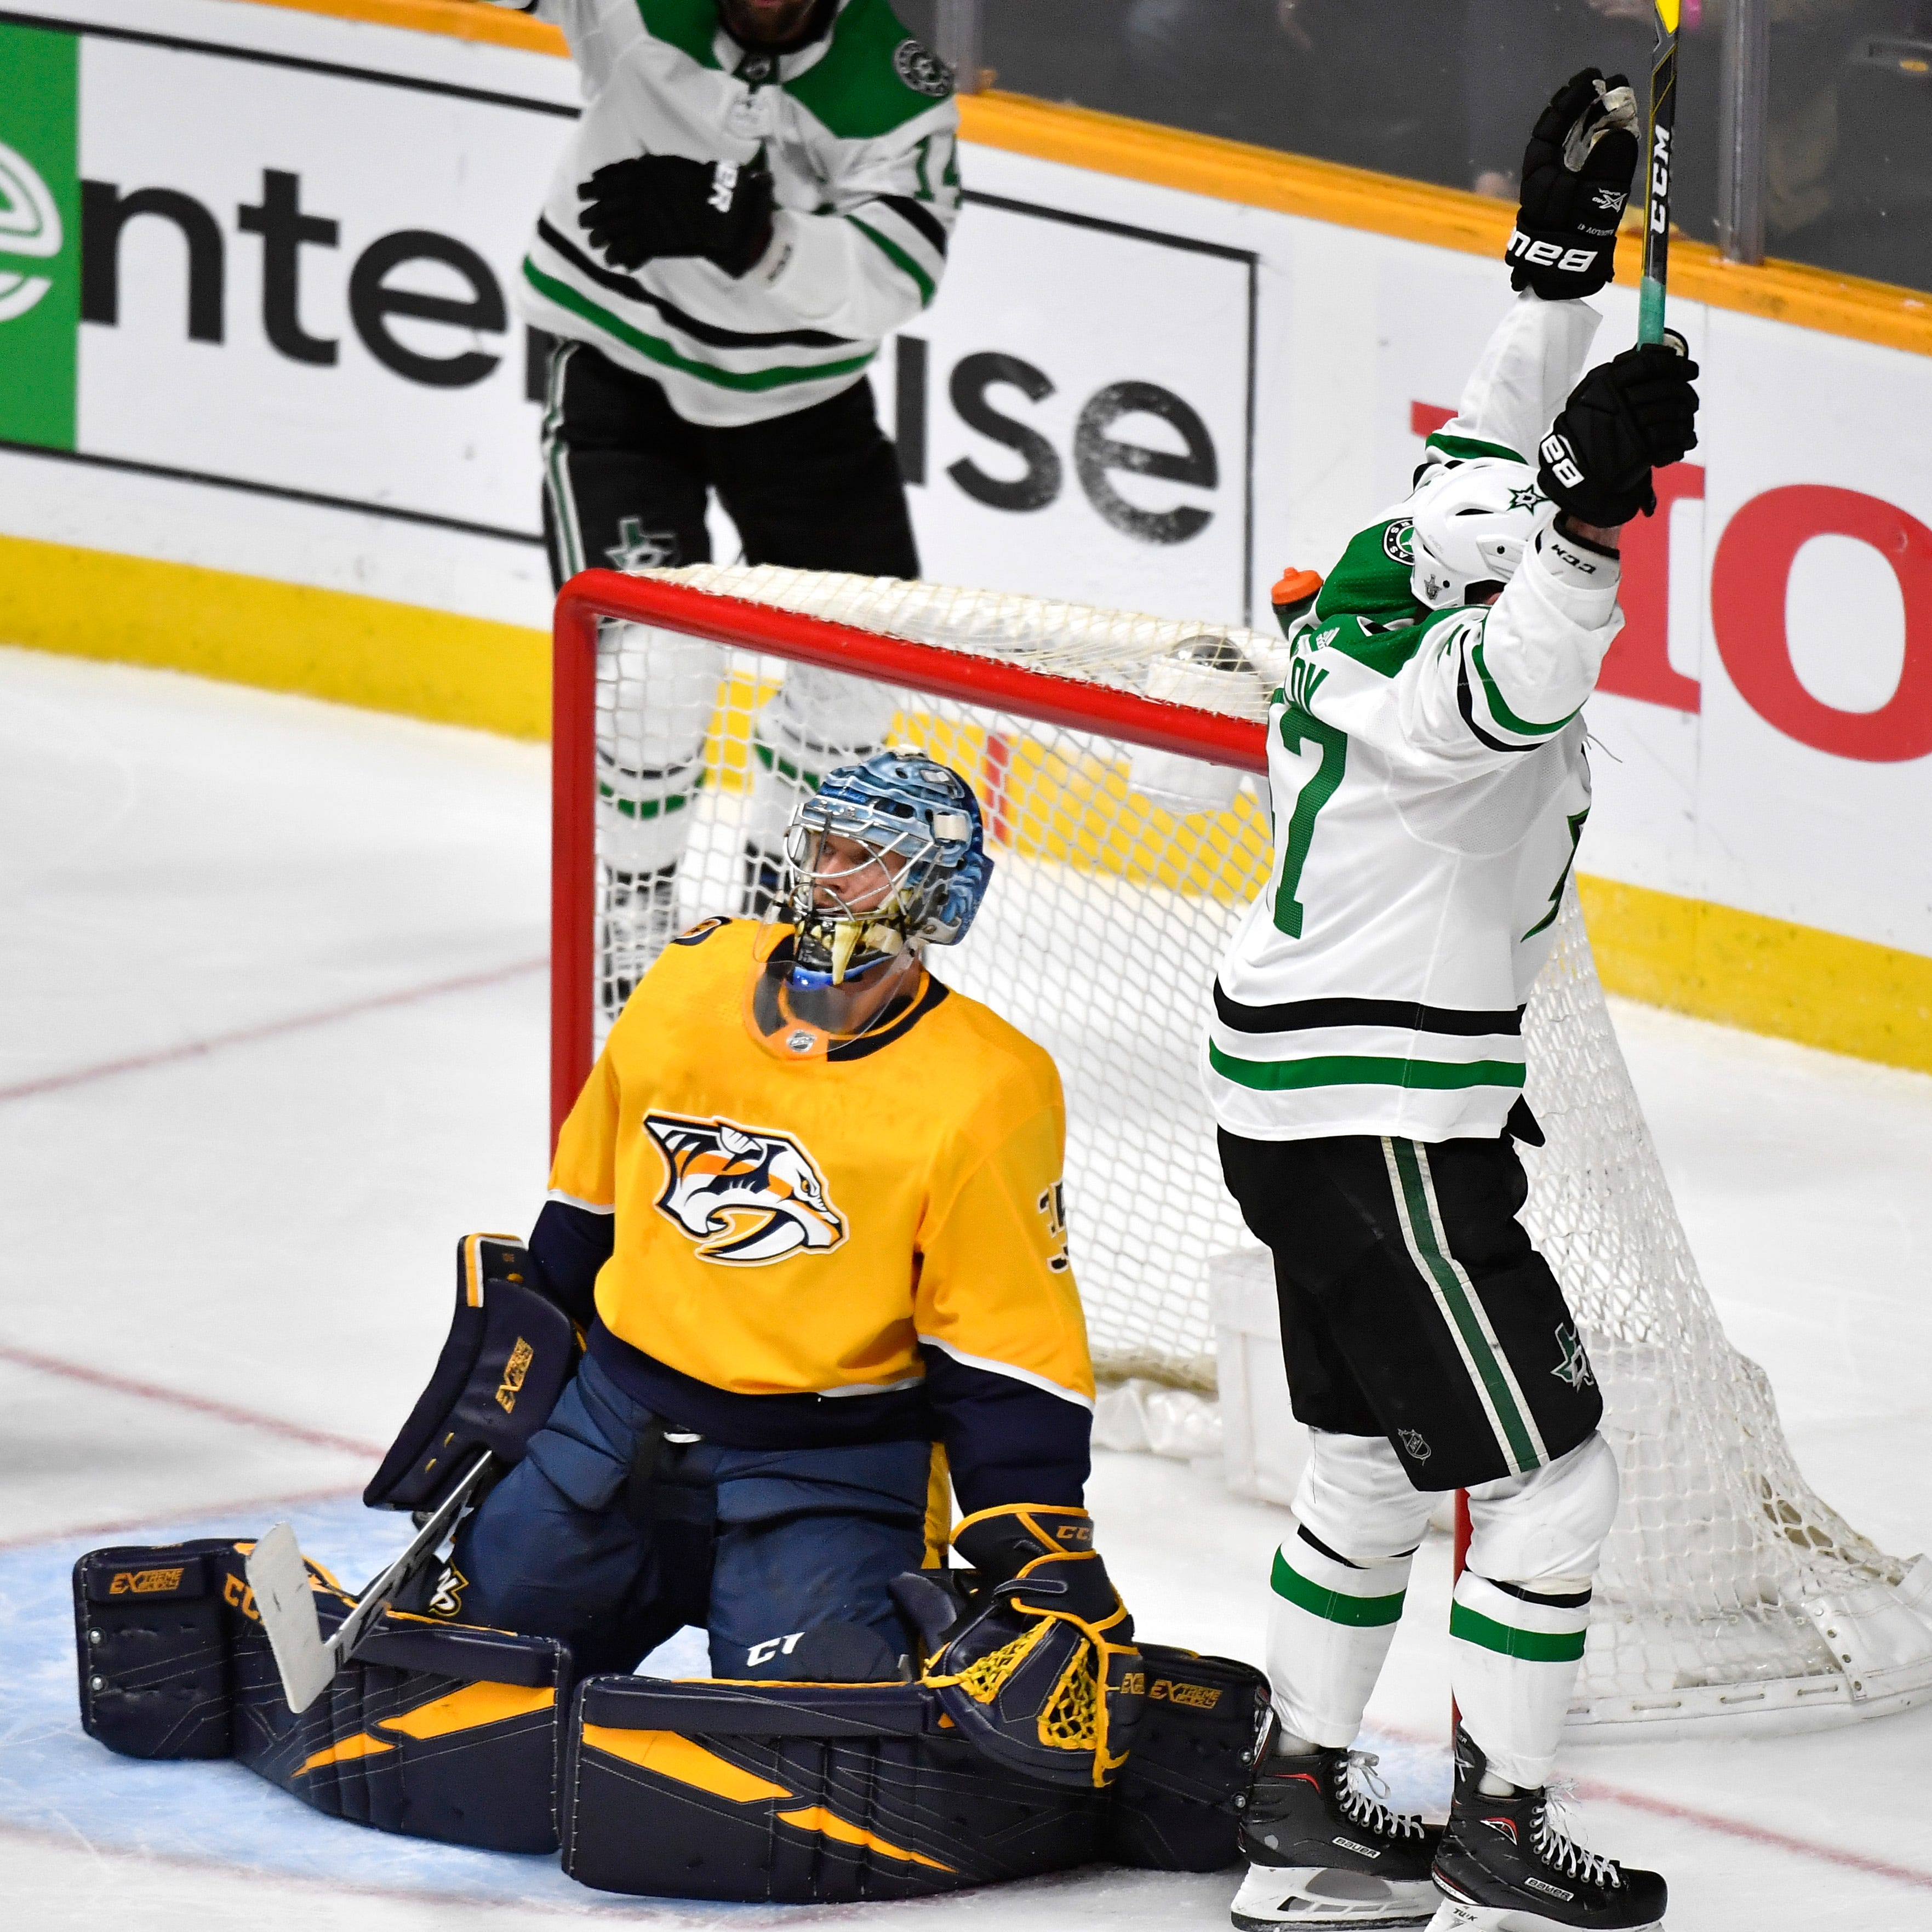 The end is near for the Nashville Predators as we know them